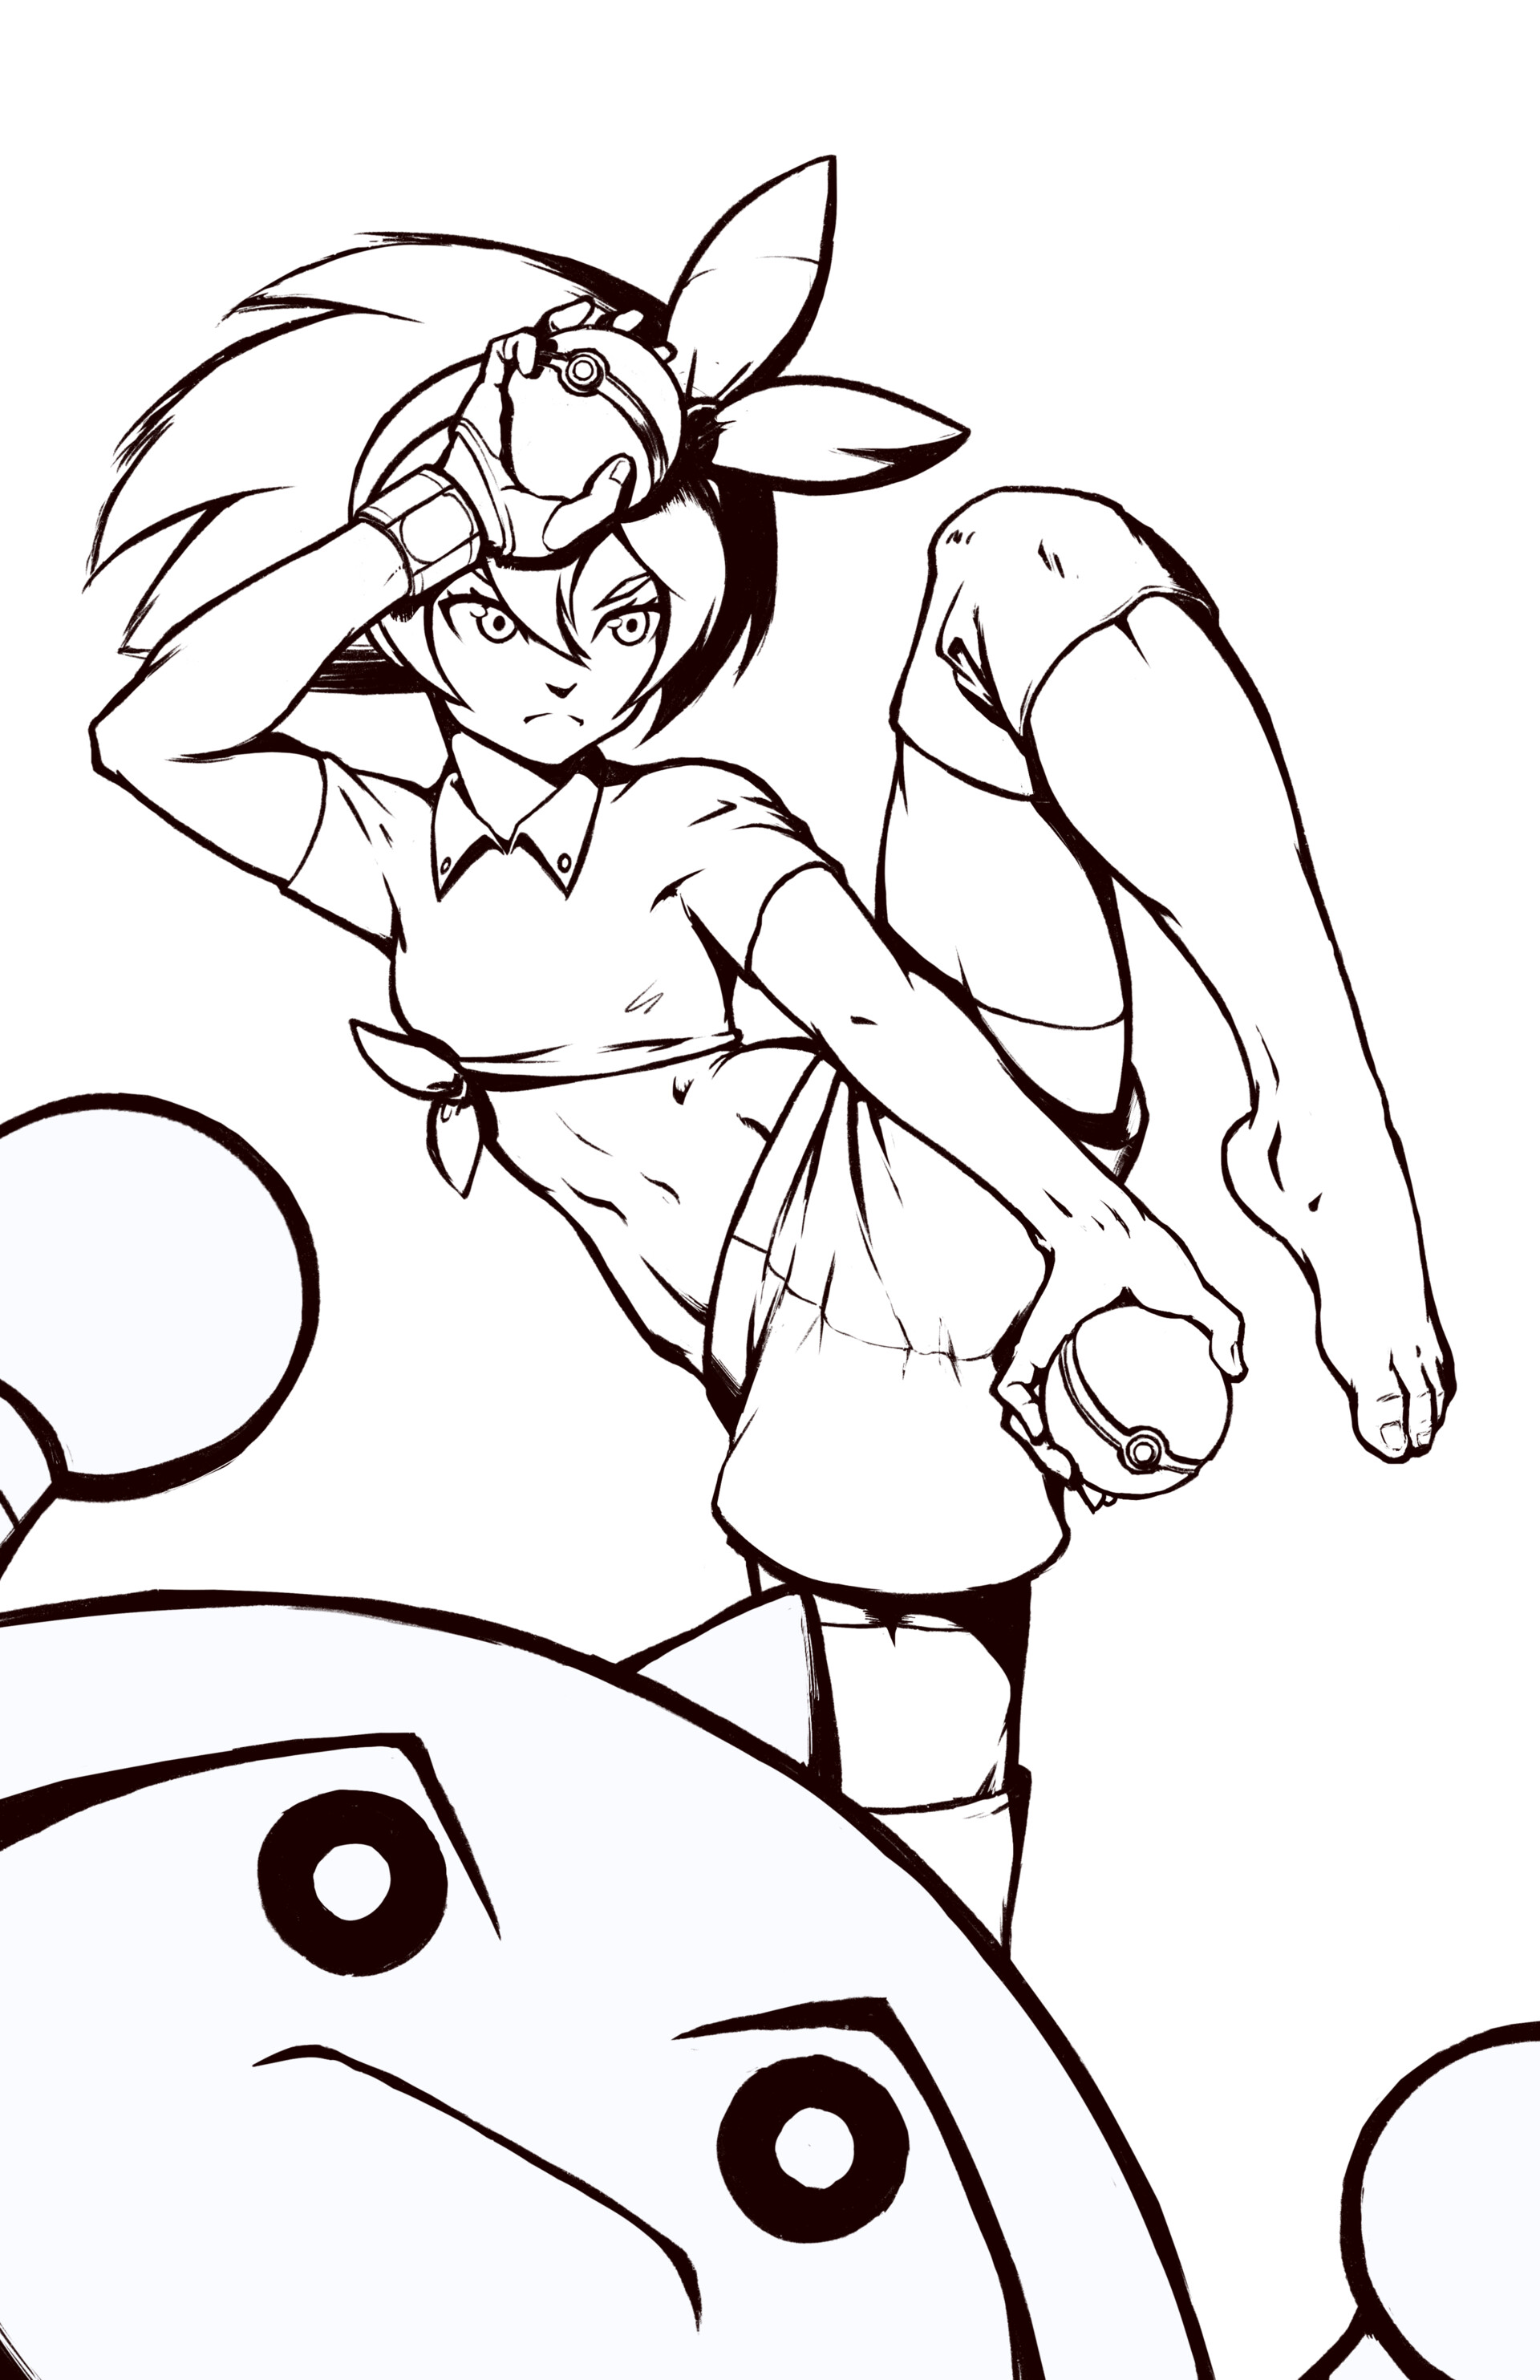 Line-art before coloring